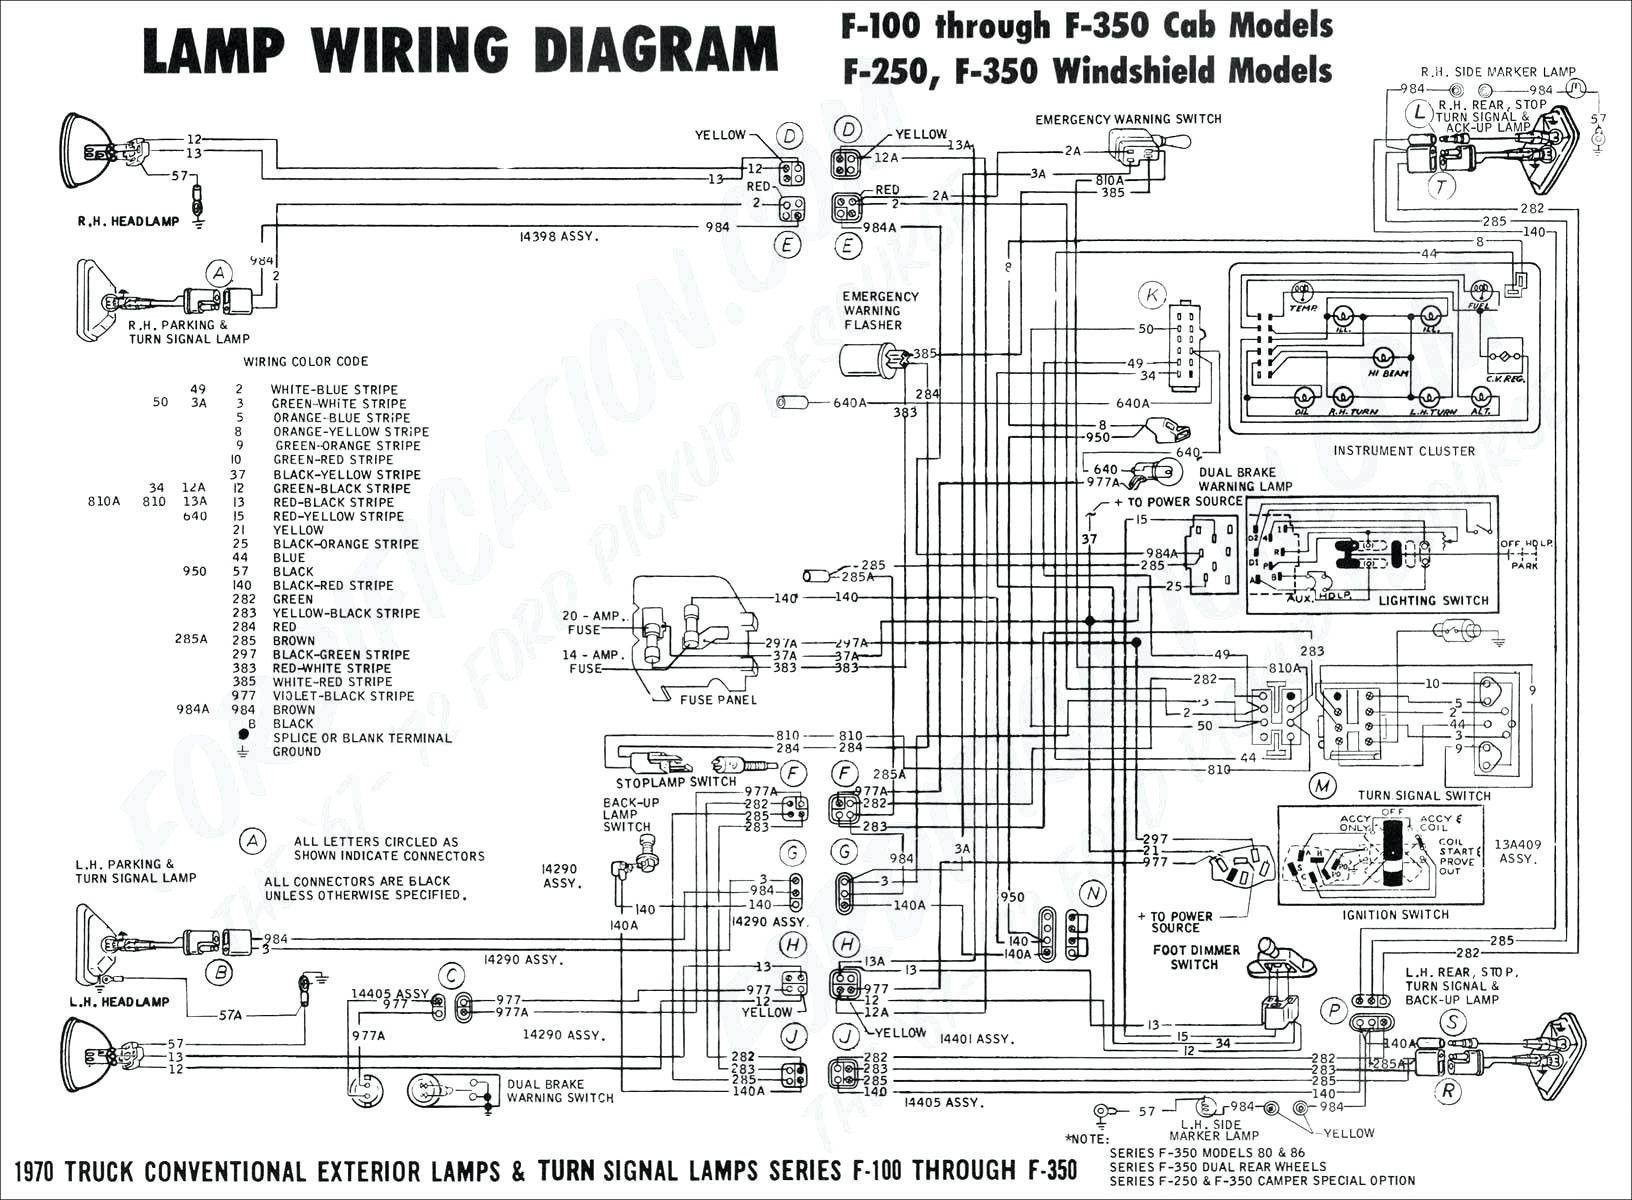 Wiring Diagram For Kohler Engine Trailer Wiring Diagram Electrical Wiring Diagram Diagram